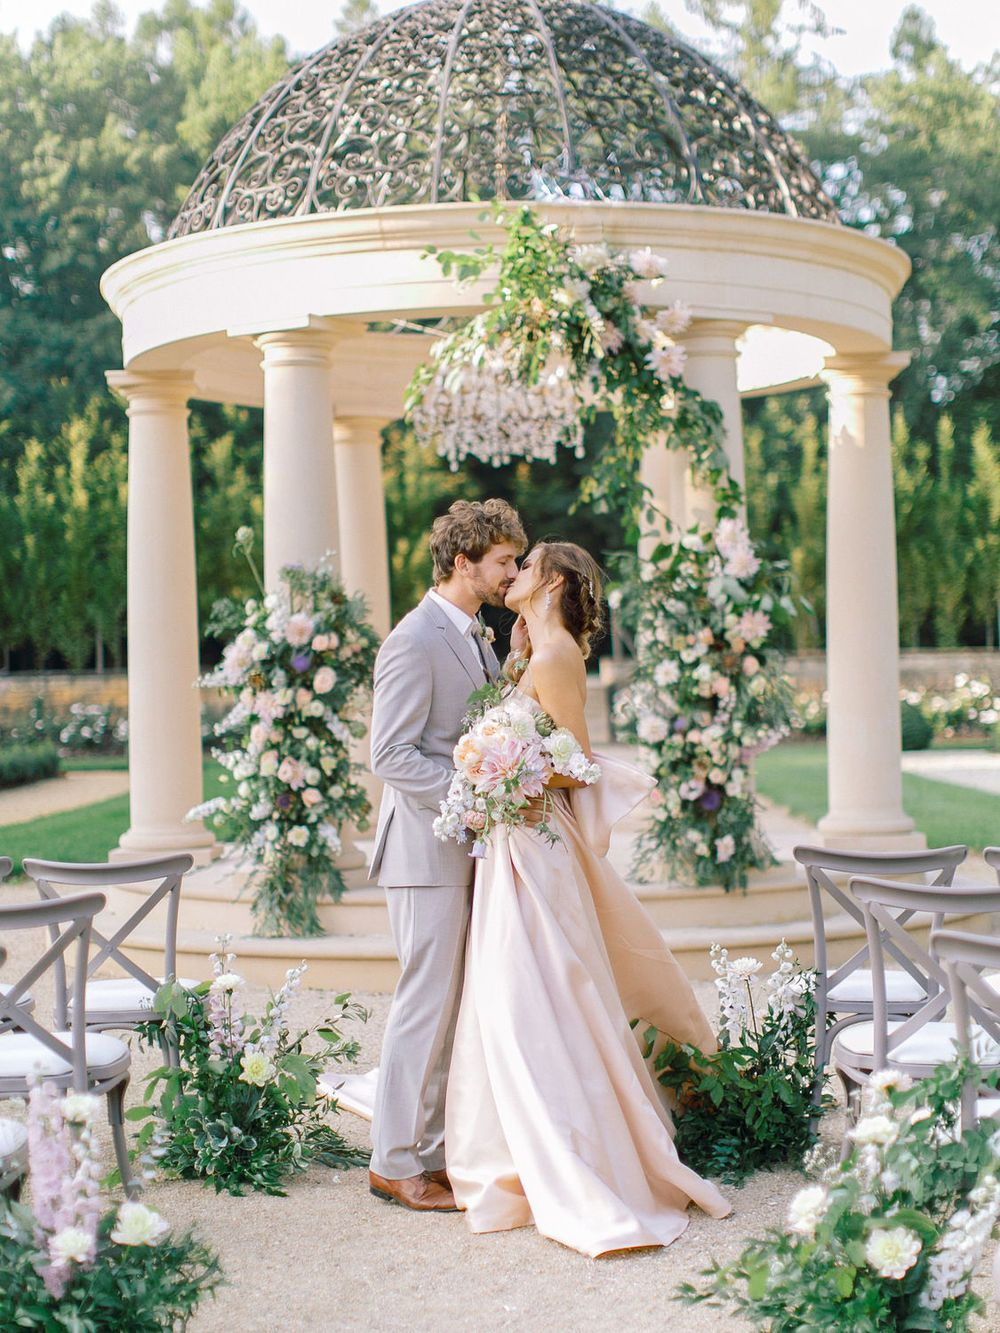 b62ff0ef342 garden gazebo wedding with a strapless blush wedding dress and light gray  groom suit